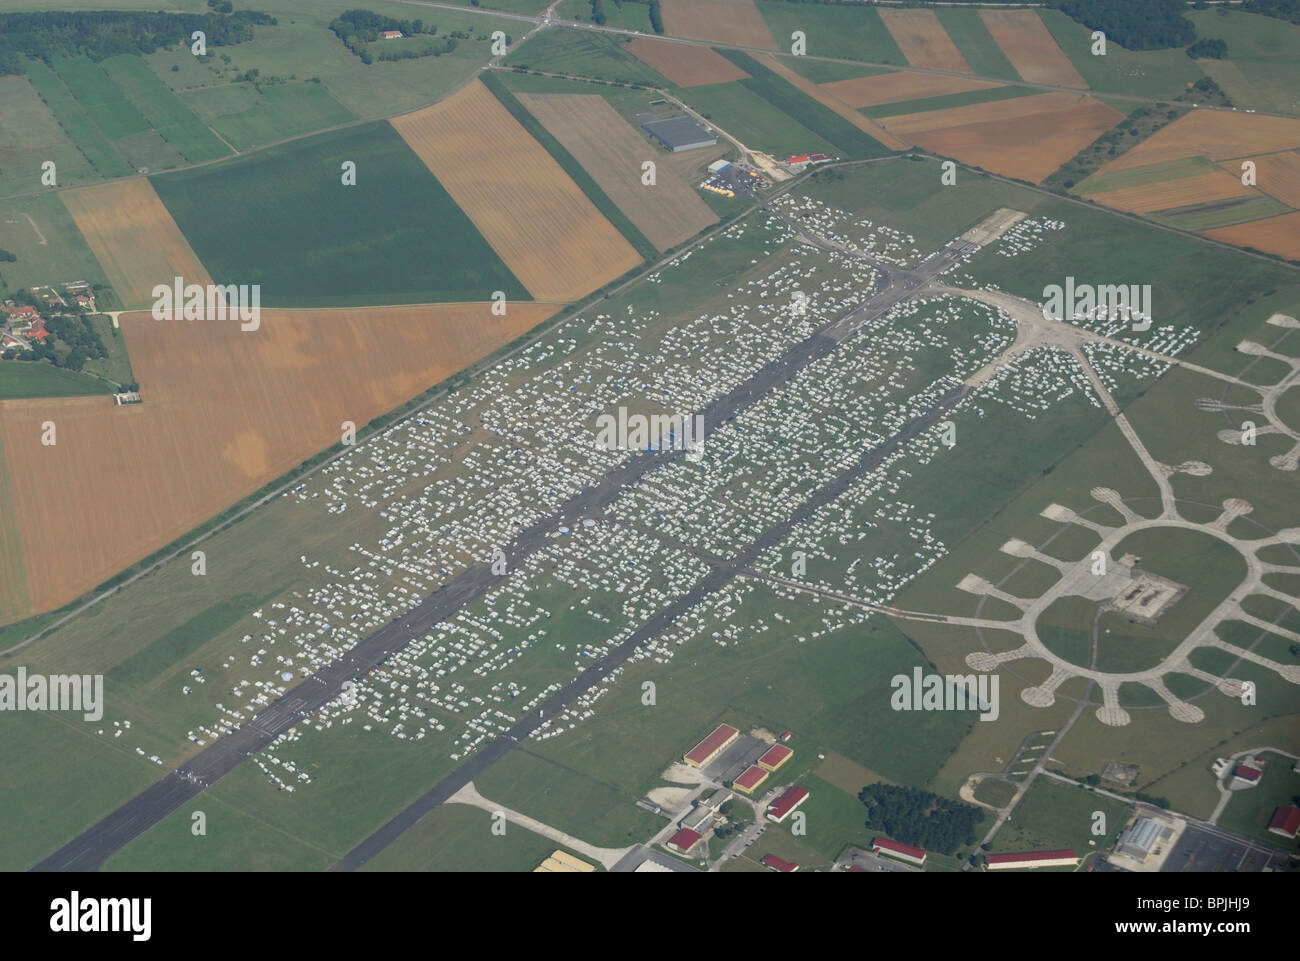 Aerial view of airport of Chaumont occupied by 25 000 gypsies  (20/8/010), Haute Marne, Champagne-Ardenne region, - Stock Image